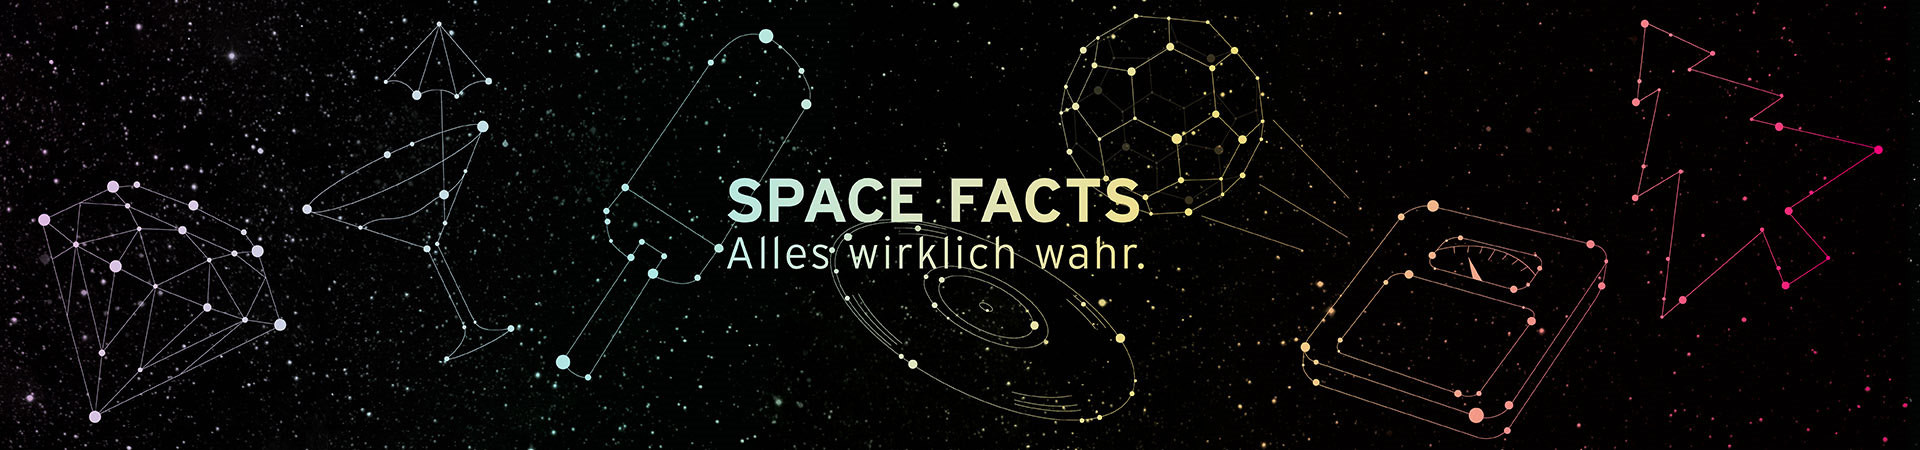 Space-Facts_header